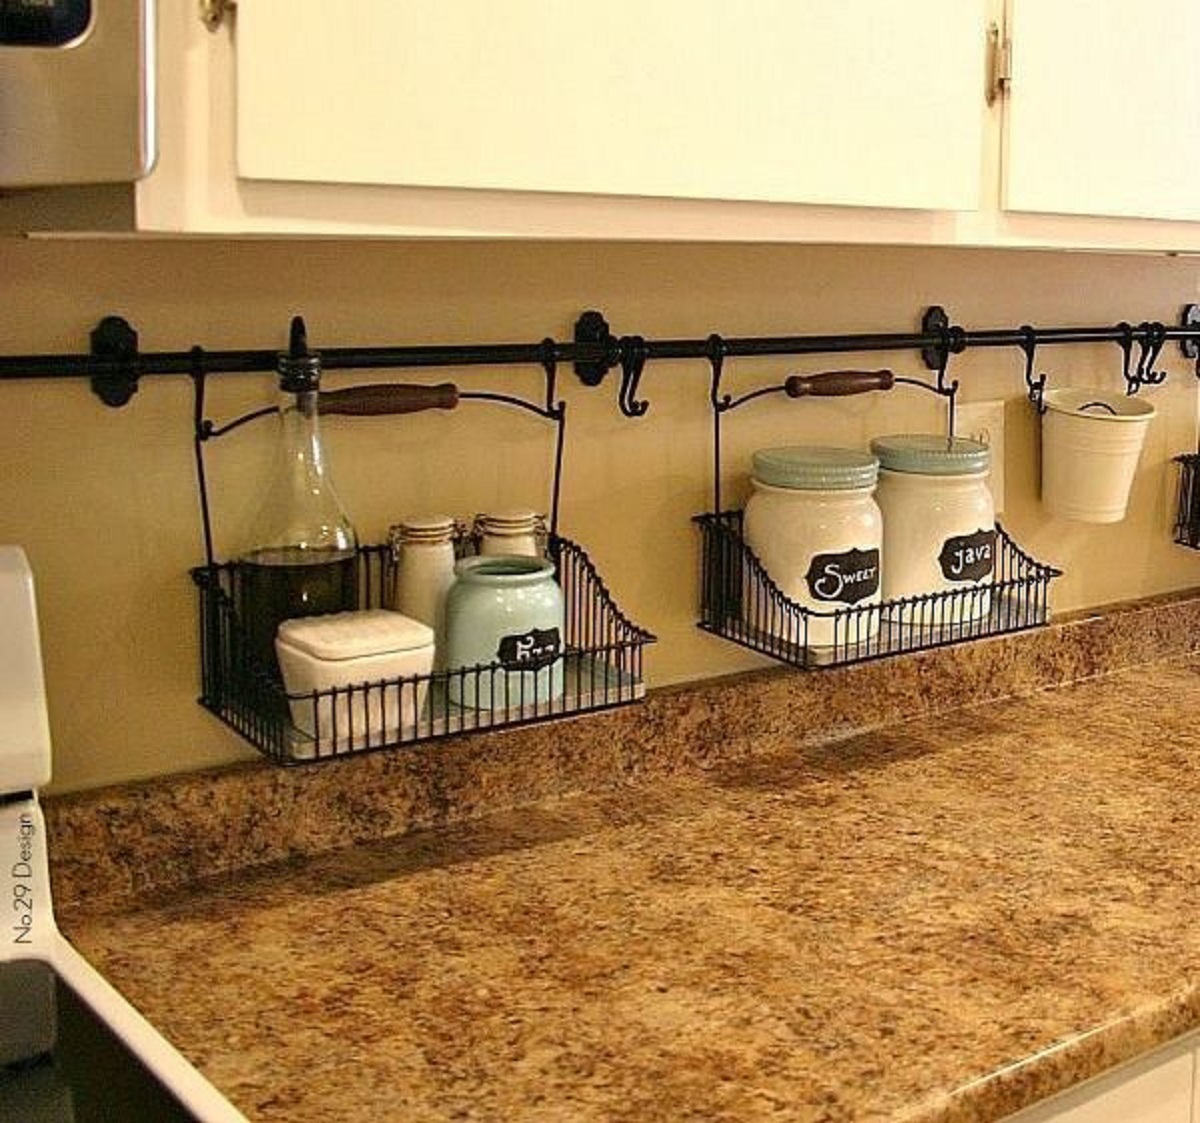 hanging-rod 80+ Unusual Kitchen Design Ideas for Small Spaces in 2021